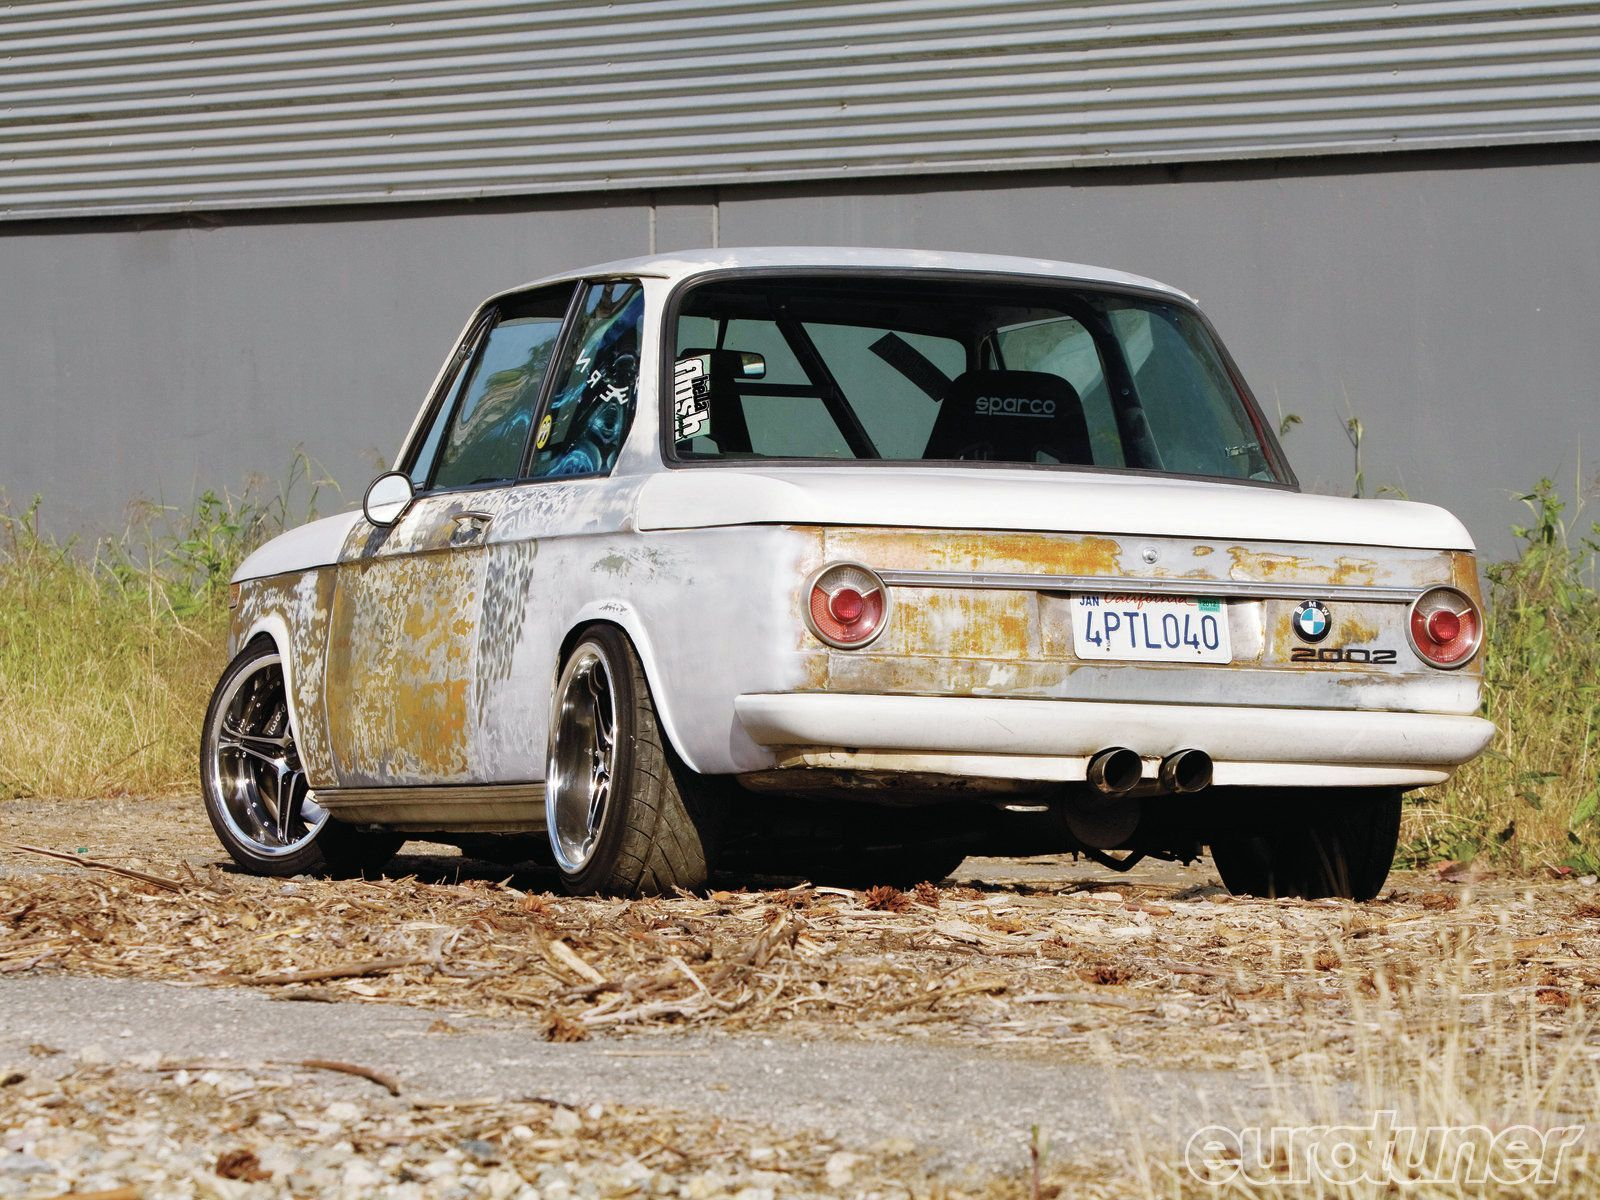 A day spent carving corners in a tweaked bmw 2002 bmw bmw 2002 and cars